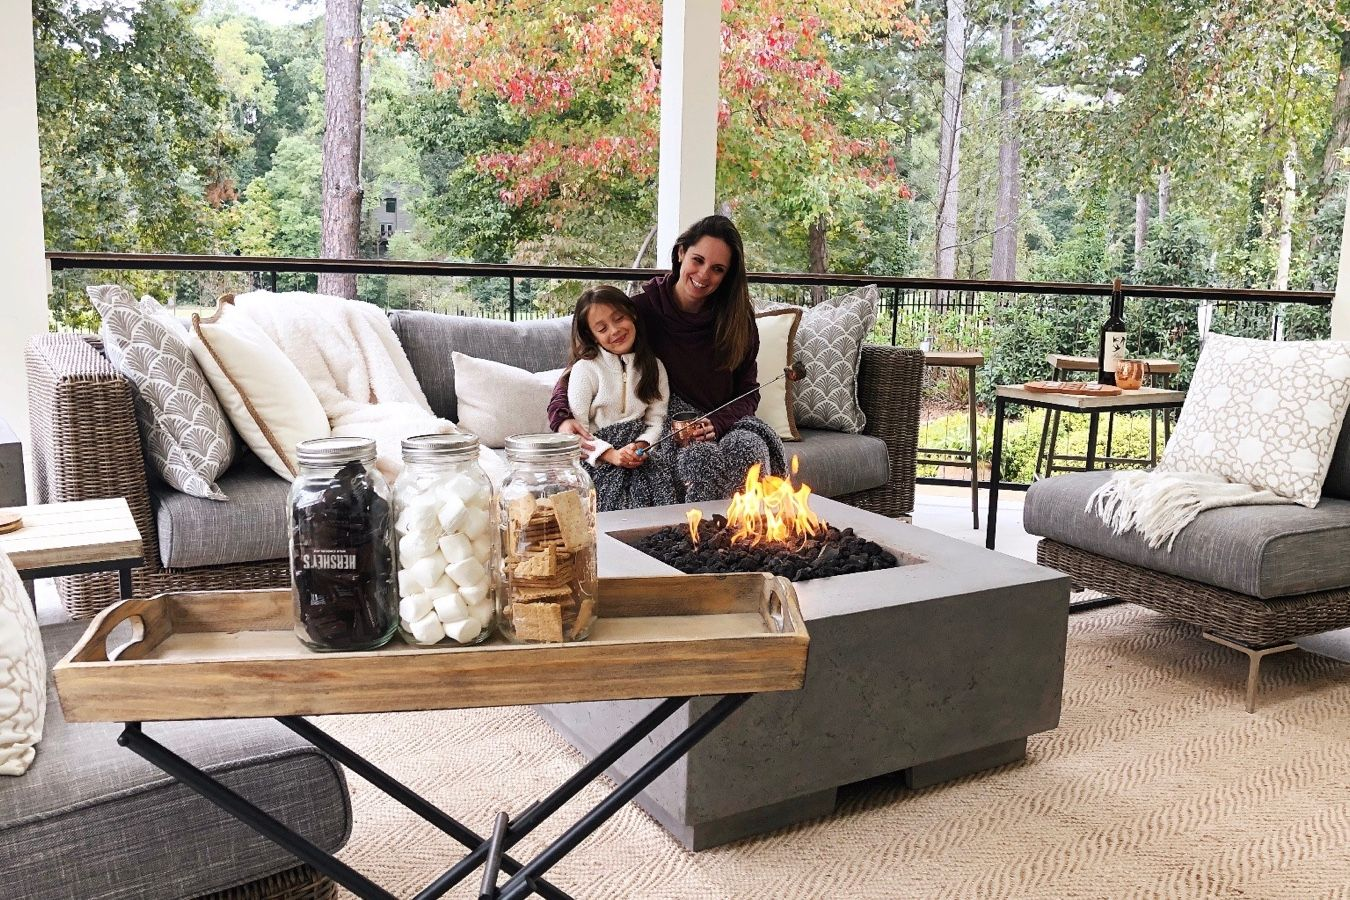 Mom and daughter making s'mores in their backyard firpit